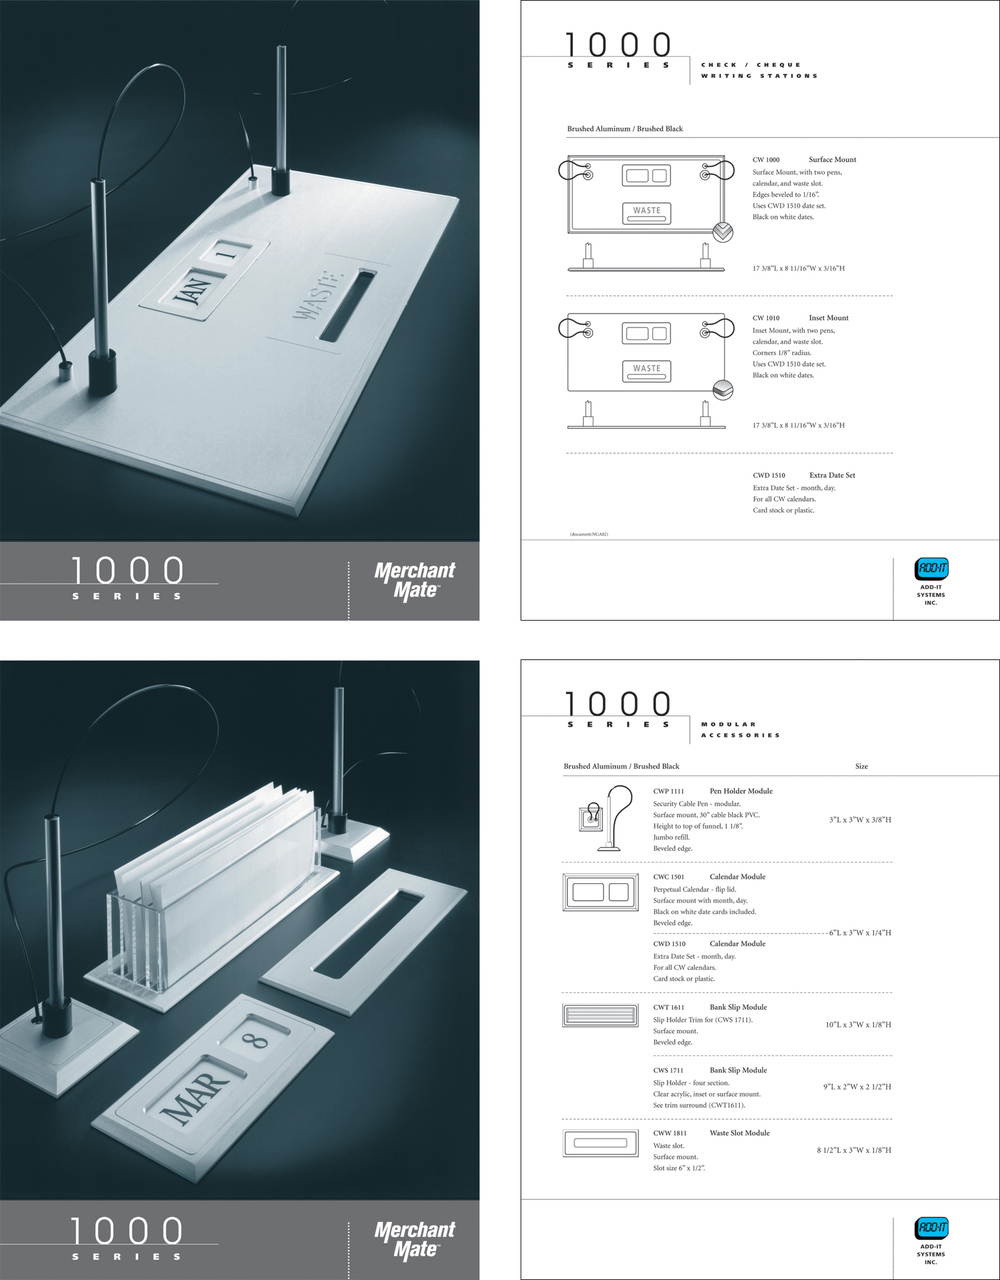 product-sheets-design-specs.jpg